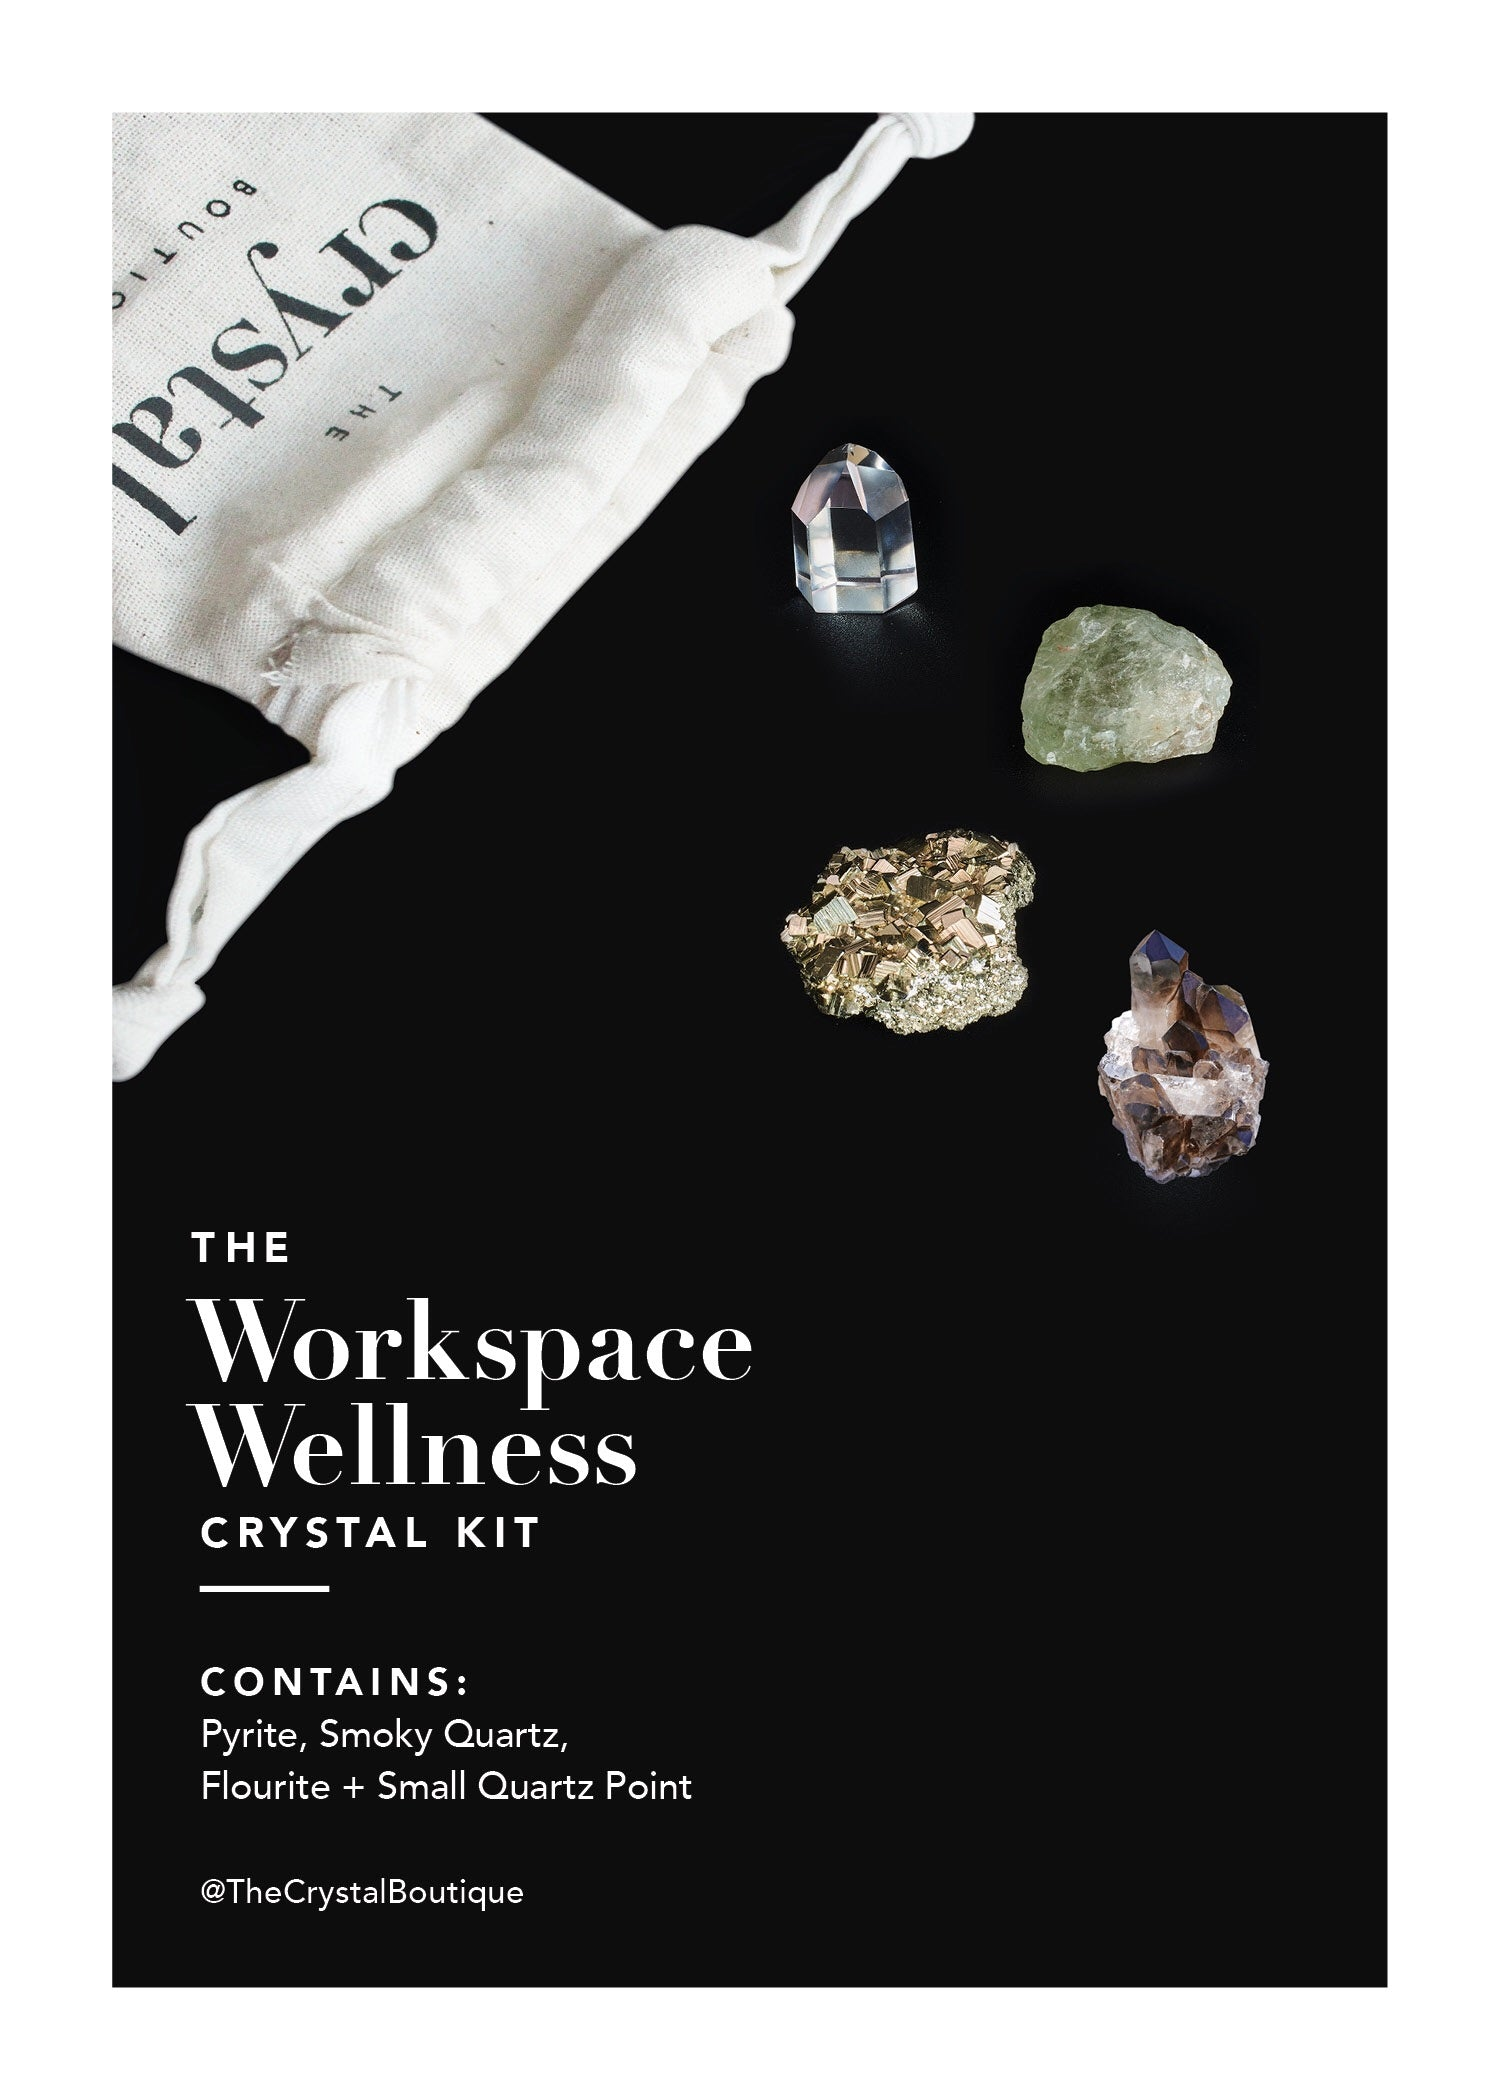 The Workspace Wellness Crystal Kit